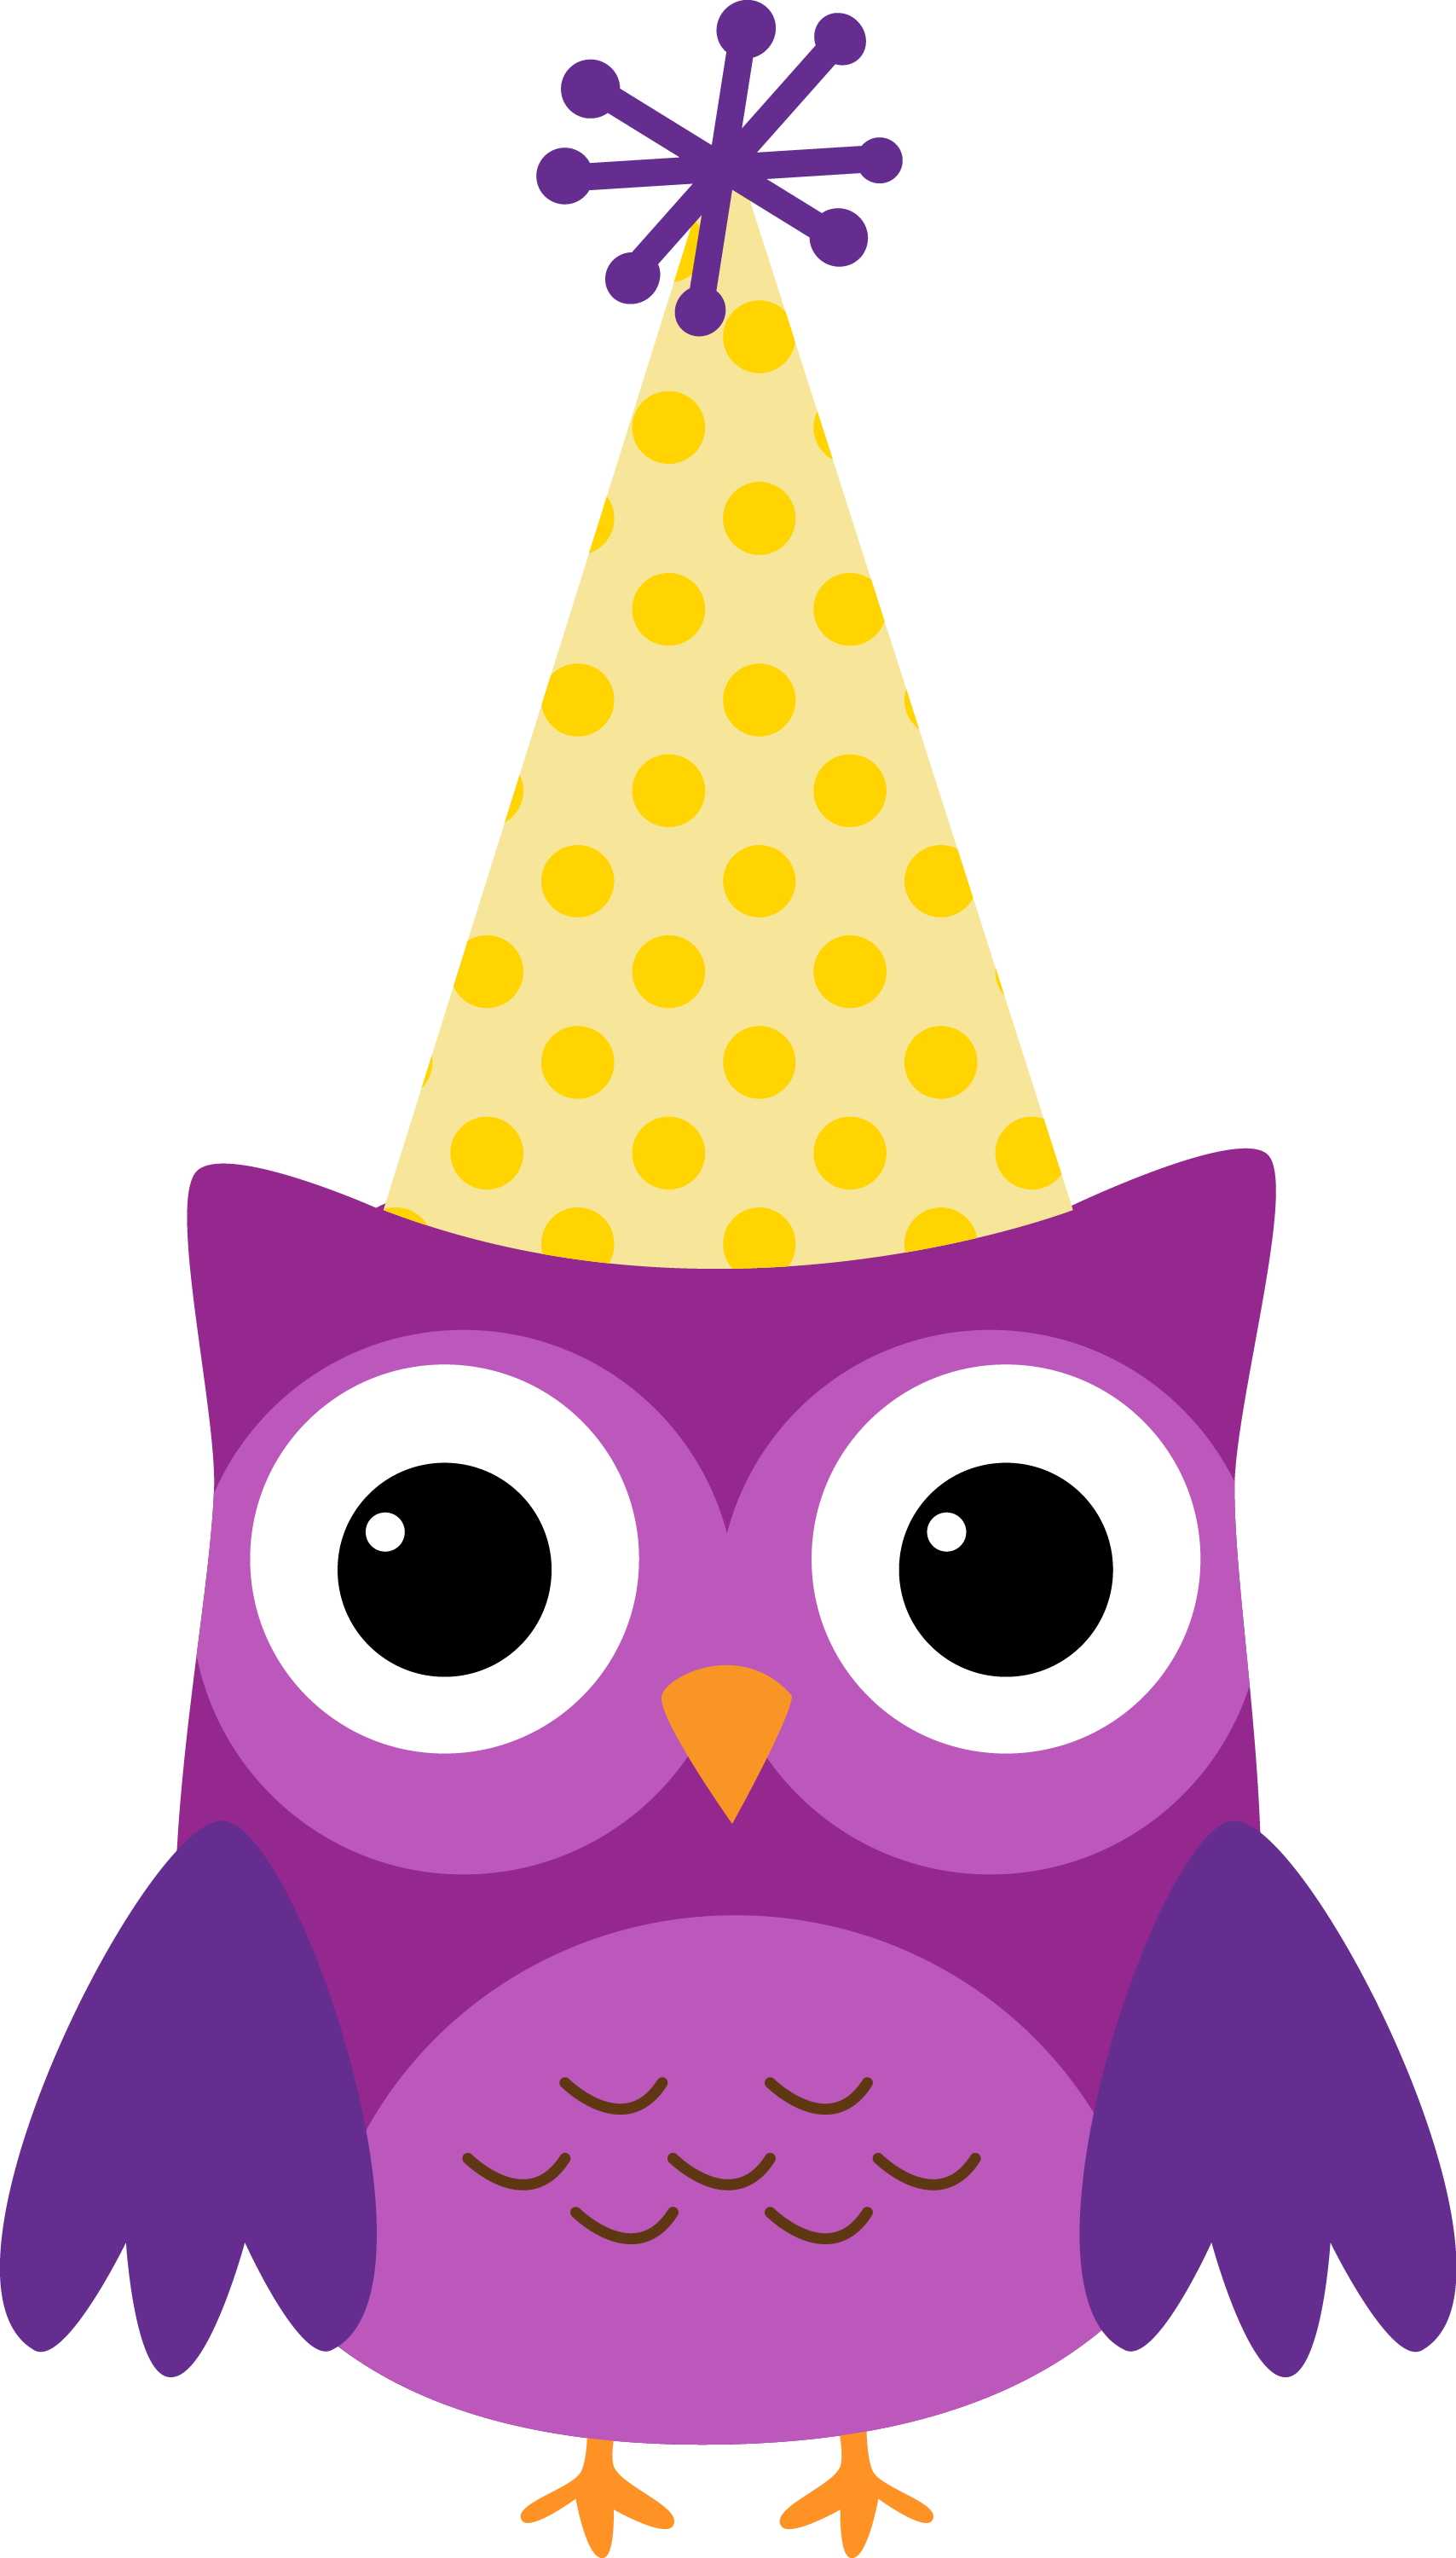 Owl with crown clipart picture transparent download 28+ Collection of Owl Birthday Clipart | High quality, free cliparts ... picture transparent download